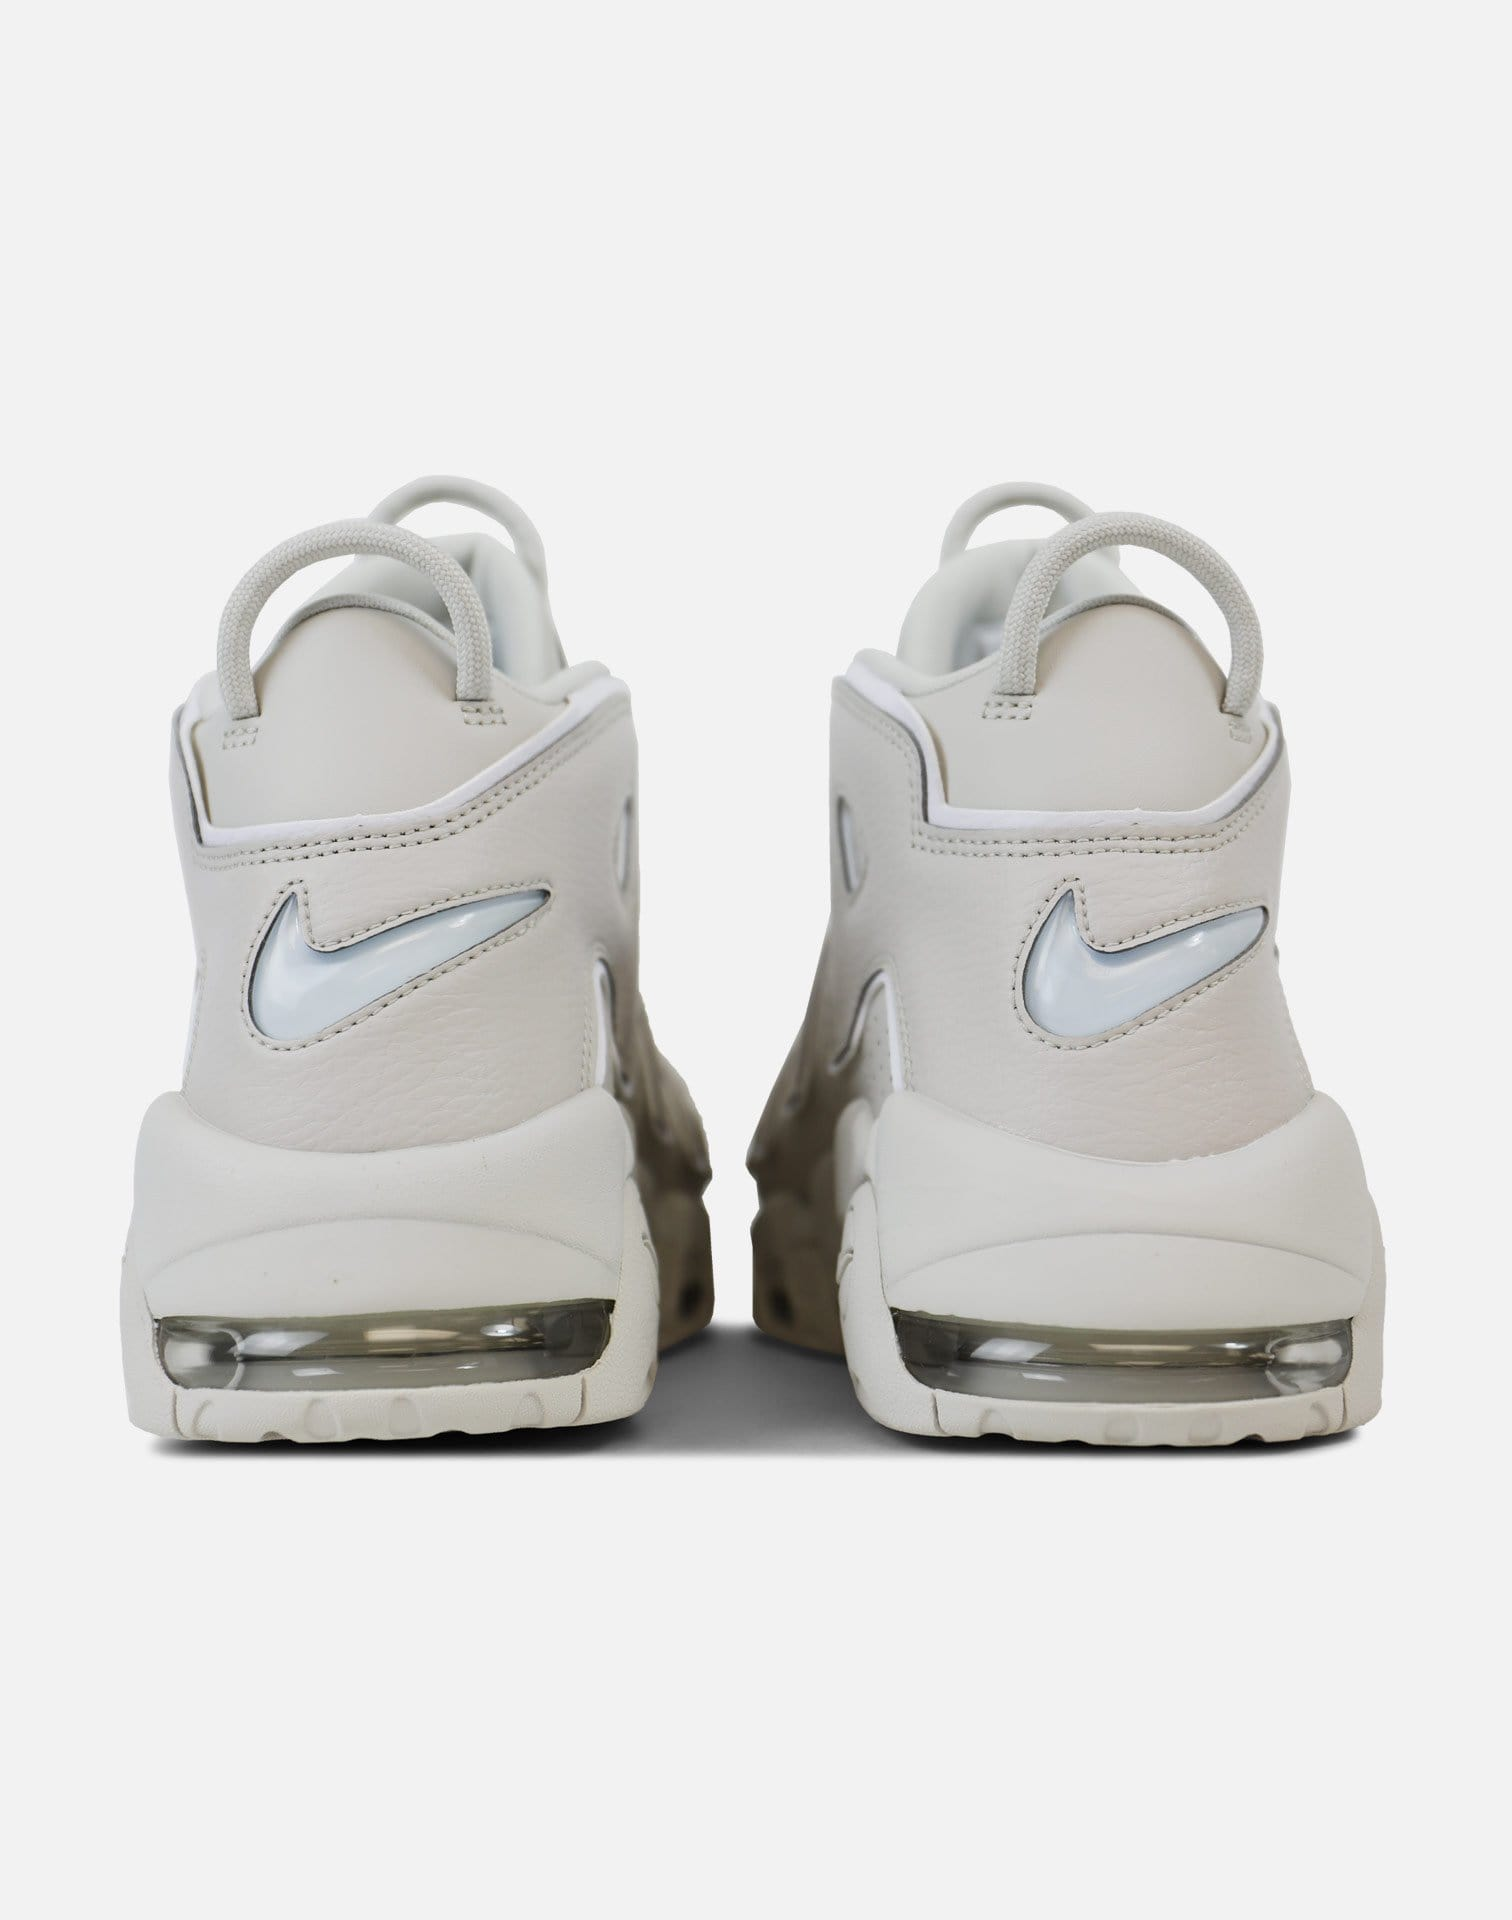 Nike Air More Uptempo 96 (Light Bone/White-Light Bone)